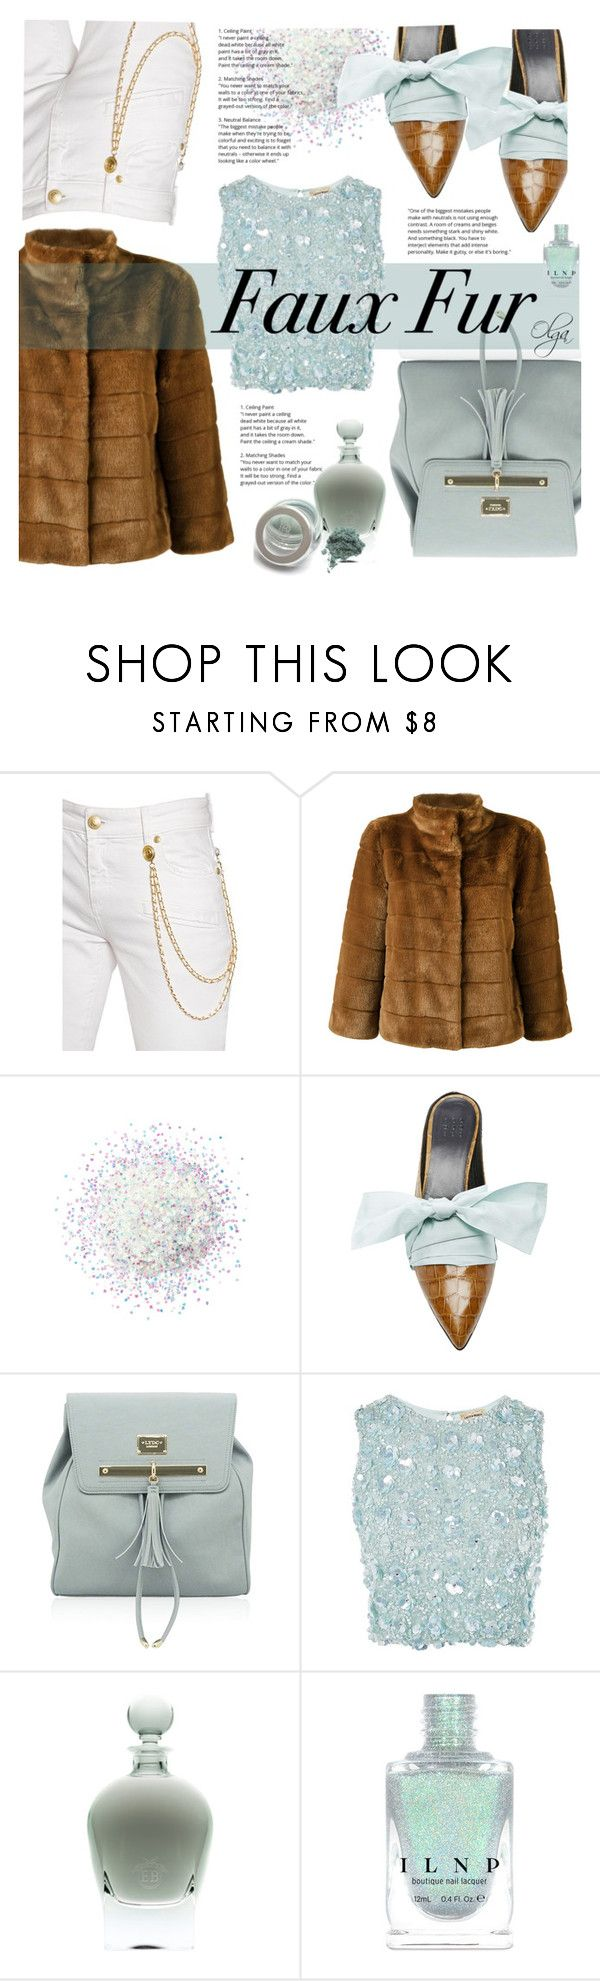 """""""Armani Faux Fur"""" by olga1402 ❤ liked on Polyvore featuring Pierre Balmain, Armani Jeans, Lace & Beads, aqua, whitejeans and fauxfur"""